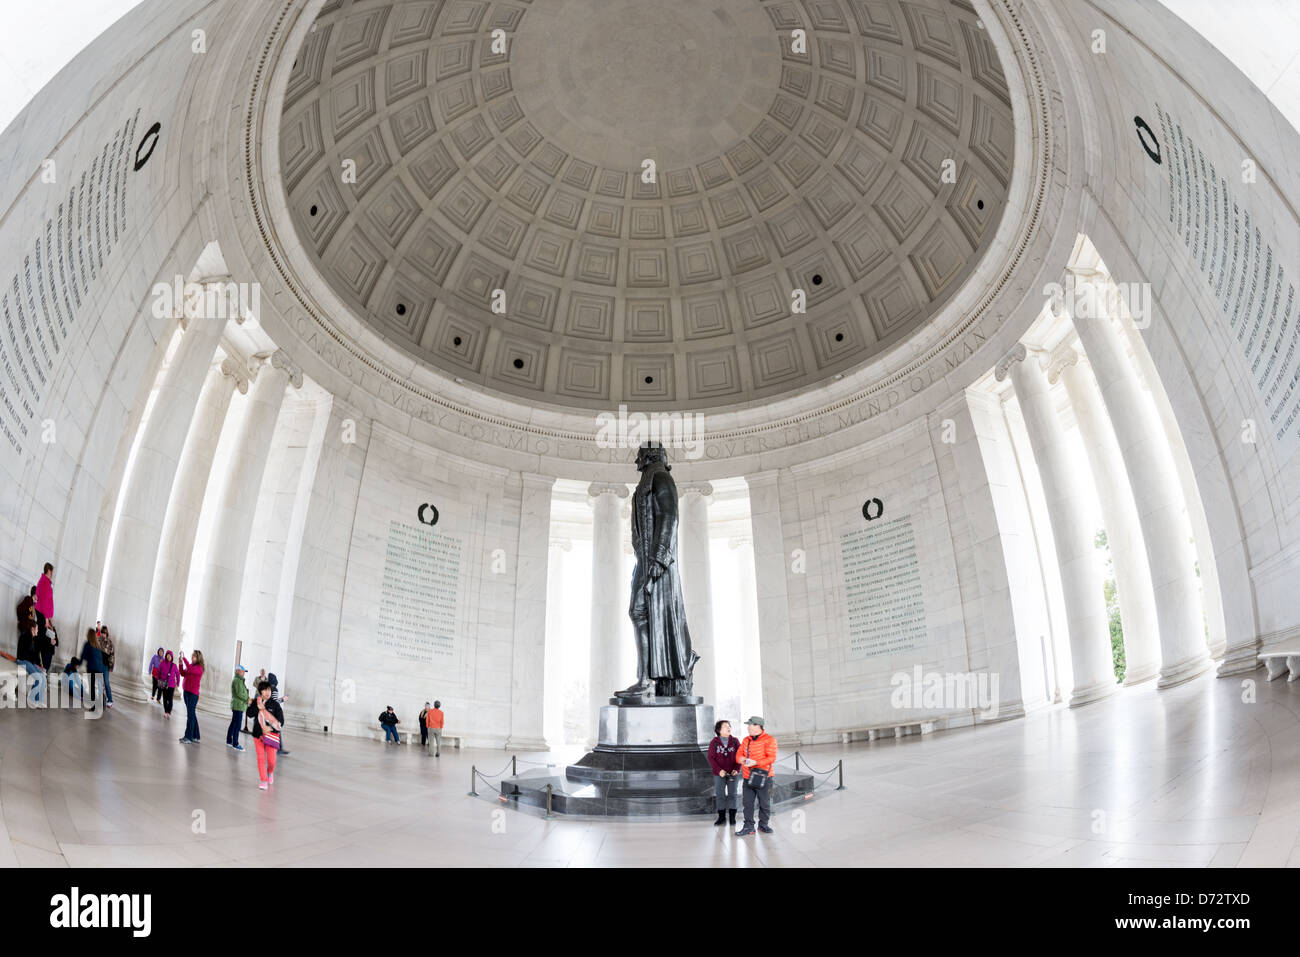 WASHINGTON DC, USA - A wide-angle shot of tourists visiting inside the Jefferson Memorial, on the banks of the Tidal Basin in Washington DC. Stock Photo